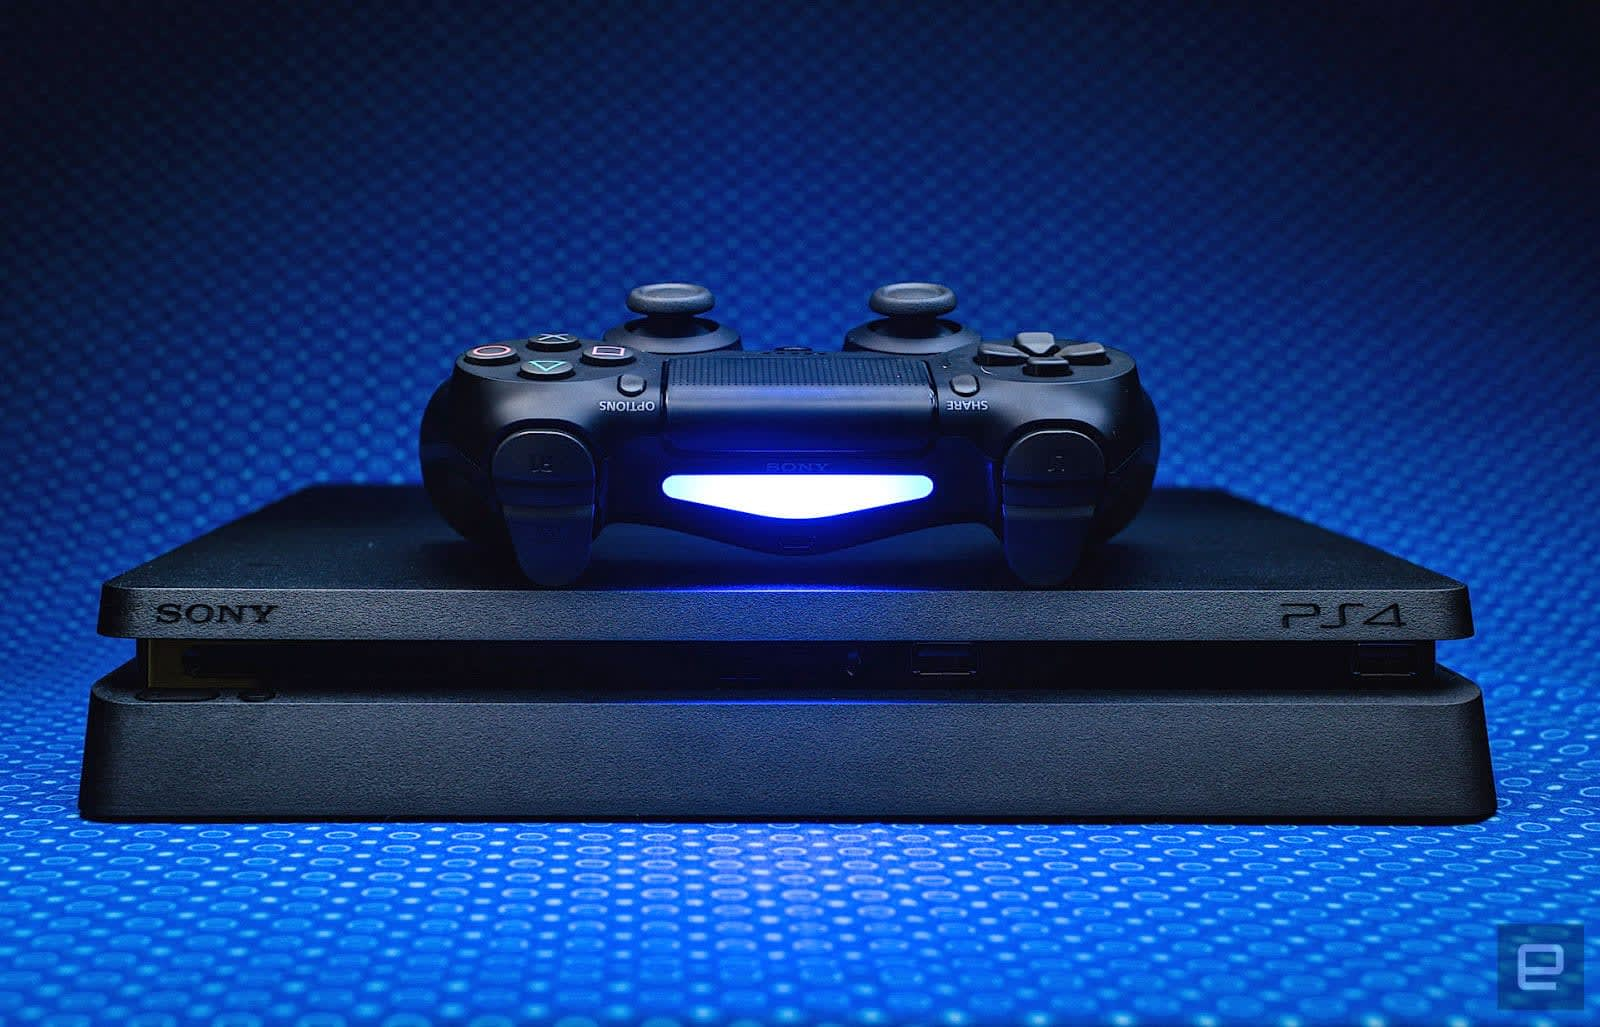 Sony winds down 2018 with a look at your PS4 gaming history